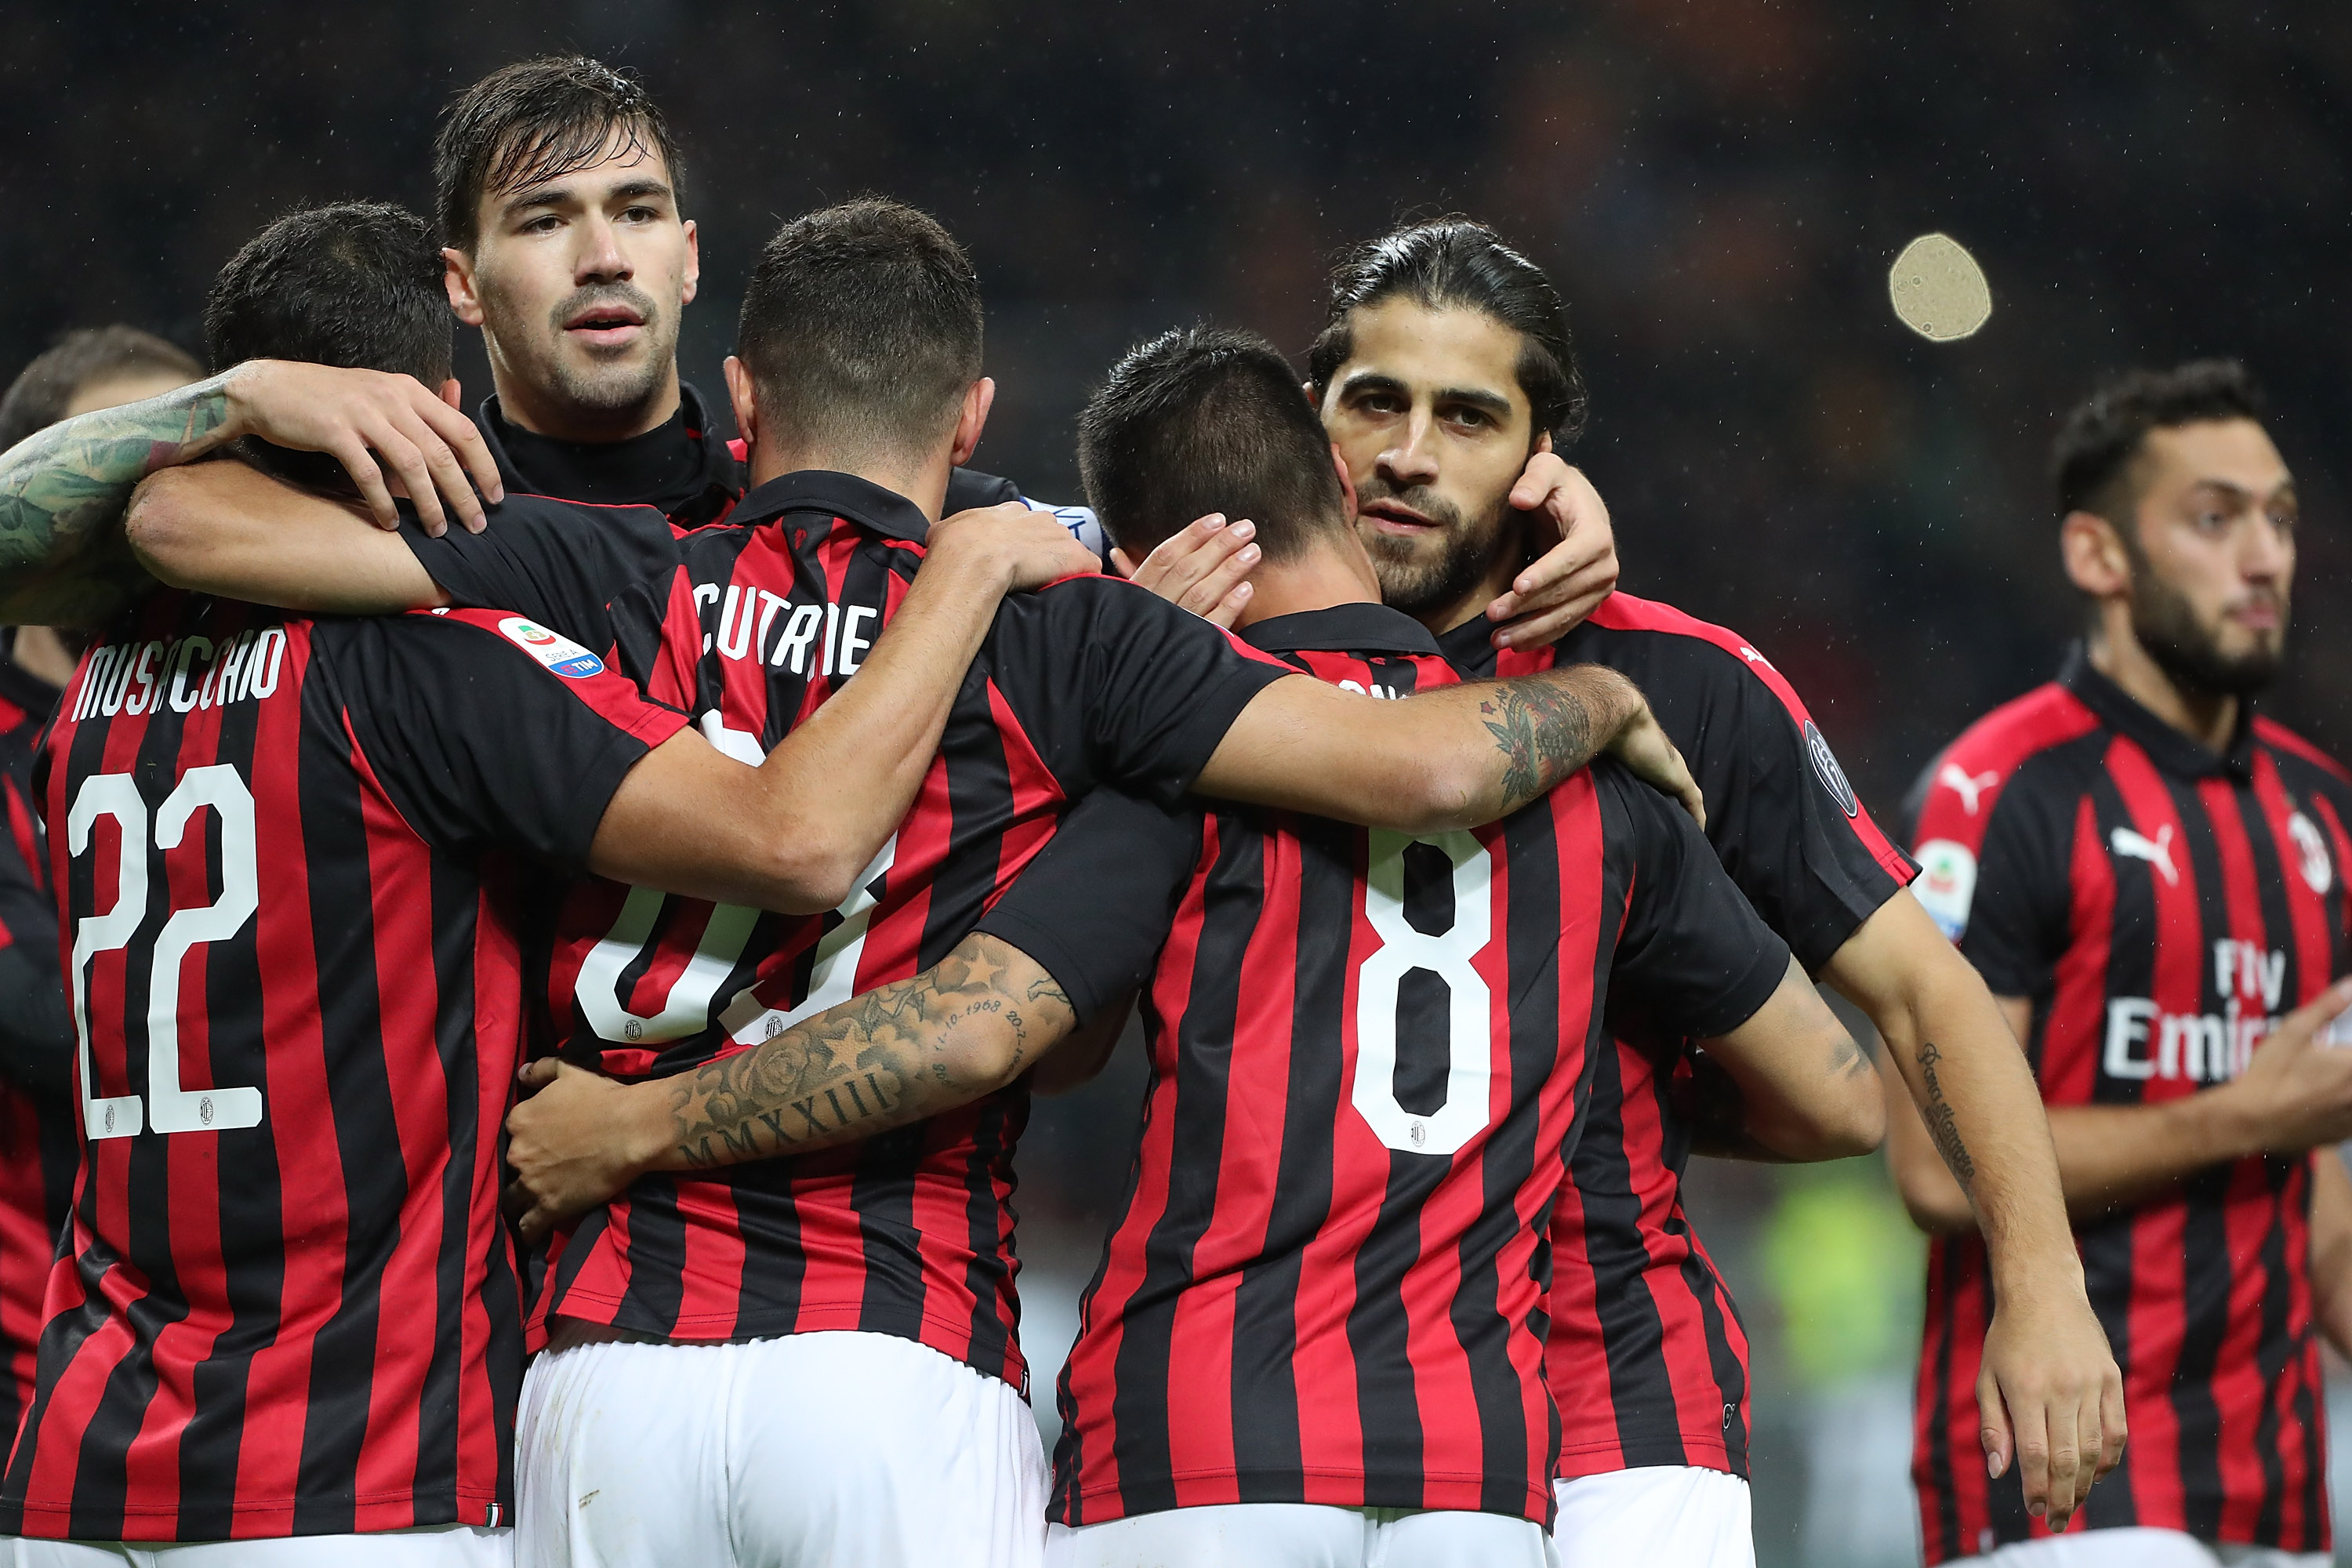 Preview Serie A Round 11 Udinese Vs Ac Milan